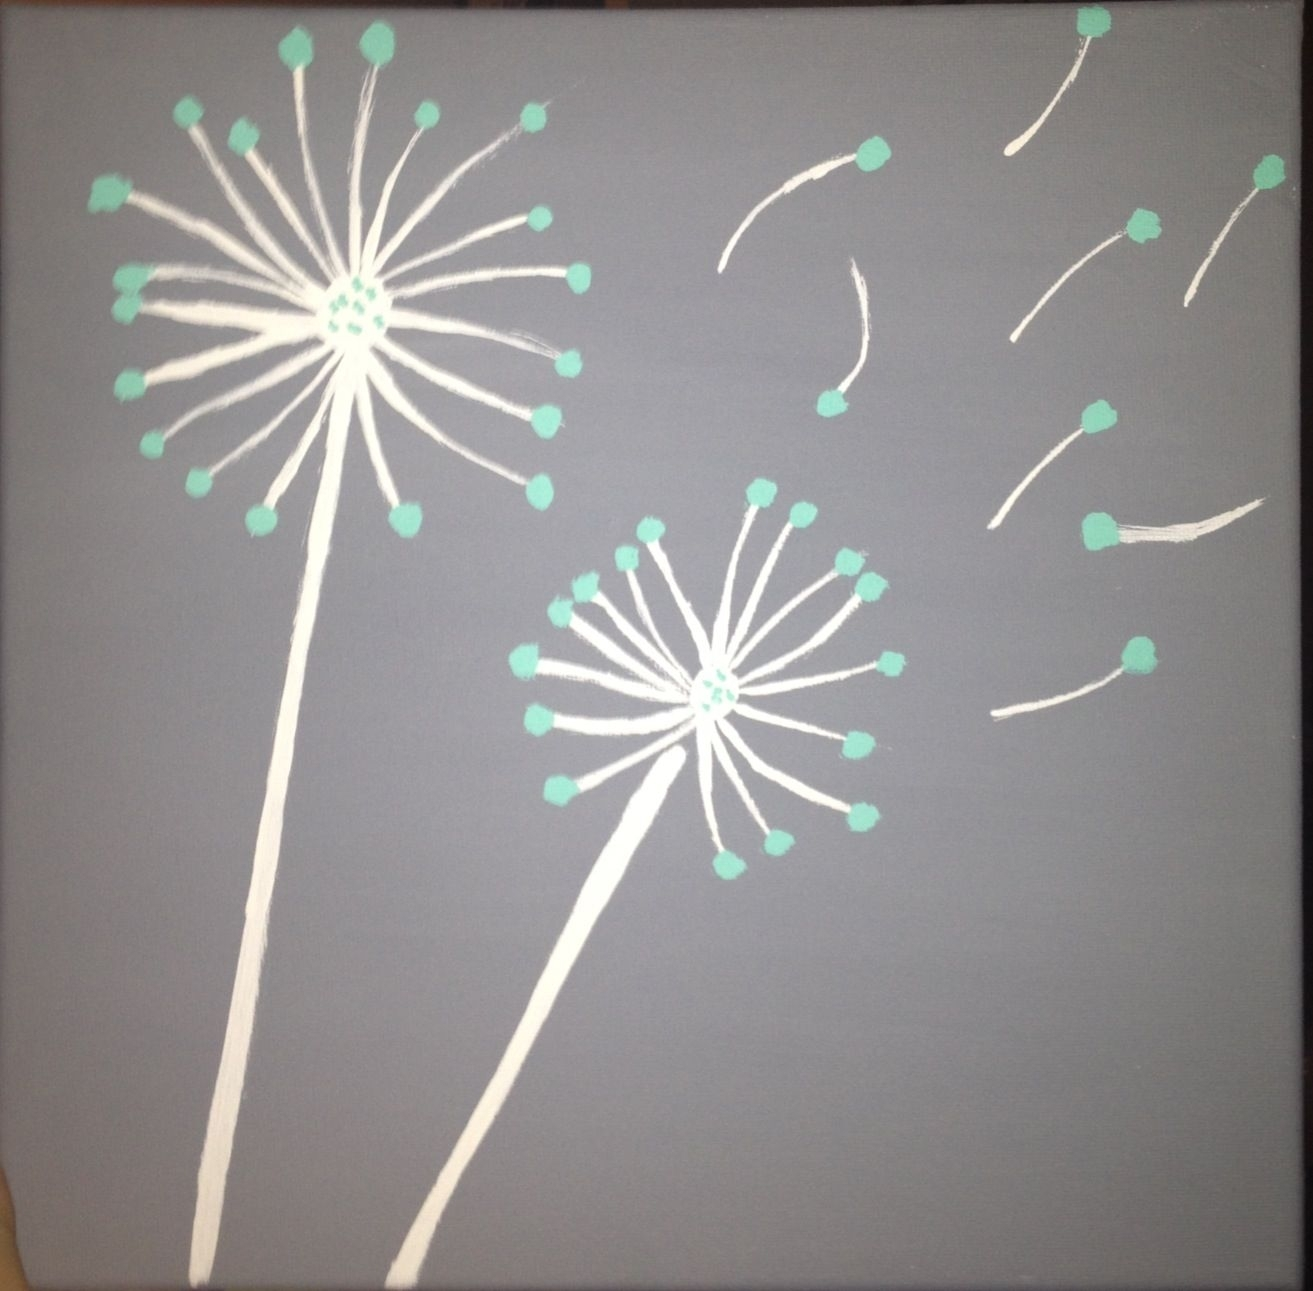 Teal And Gray Diy Dandelion Canvas Painting | Art | Pinterest In Most Up To Date Dandelion Canvas Wall Art (View 12 of 15)